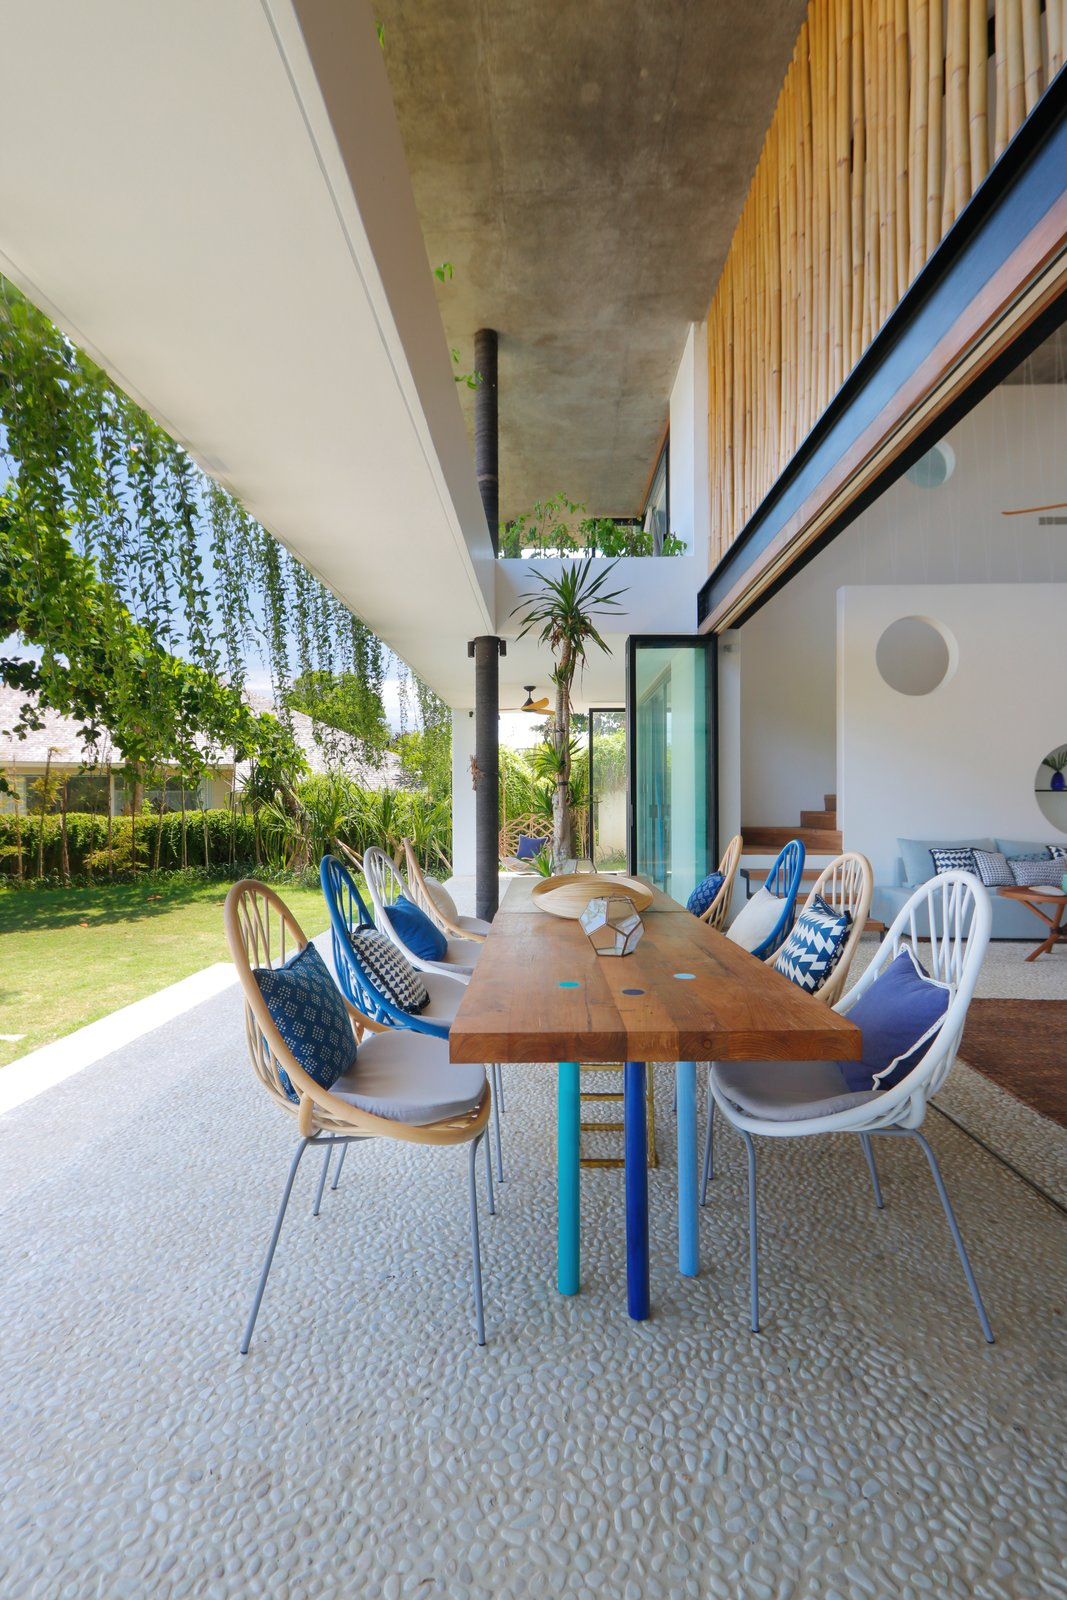 Outdoor, Grass, and Large Patio, Porch, Deck Meals can be had al fresco in the indoor/outdoor patio. The concrete/pebble floors are used both inside and outside the home to tie both spaces together.    Photo 8 of 19 in Fall in Love With Bali at This Tropical, Modern Retreat